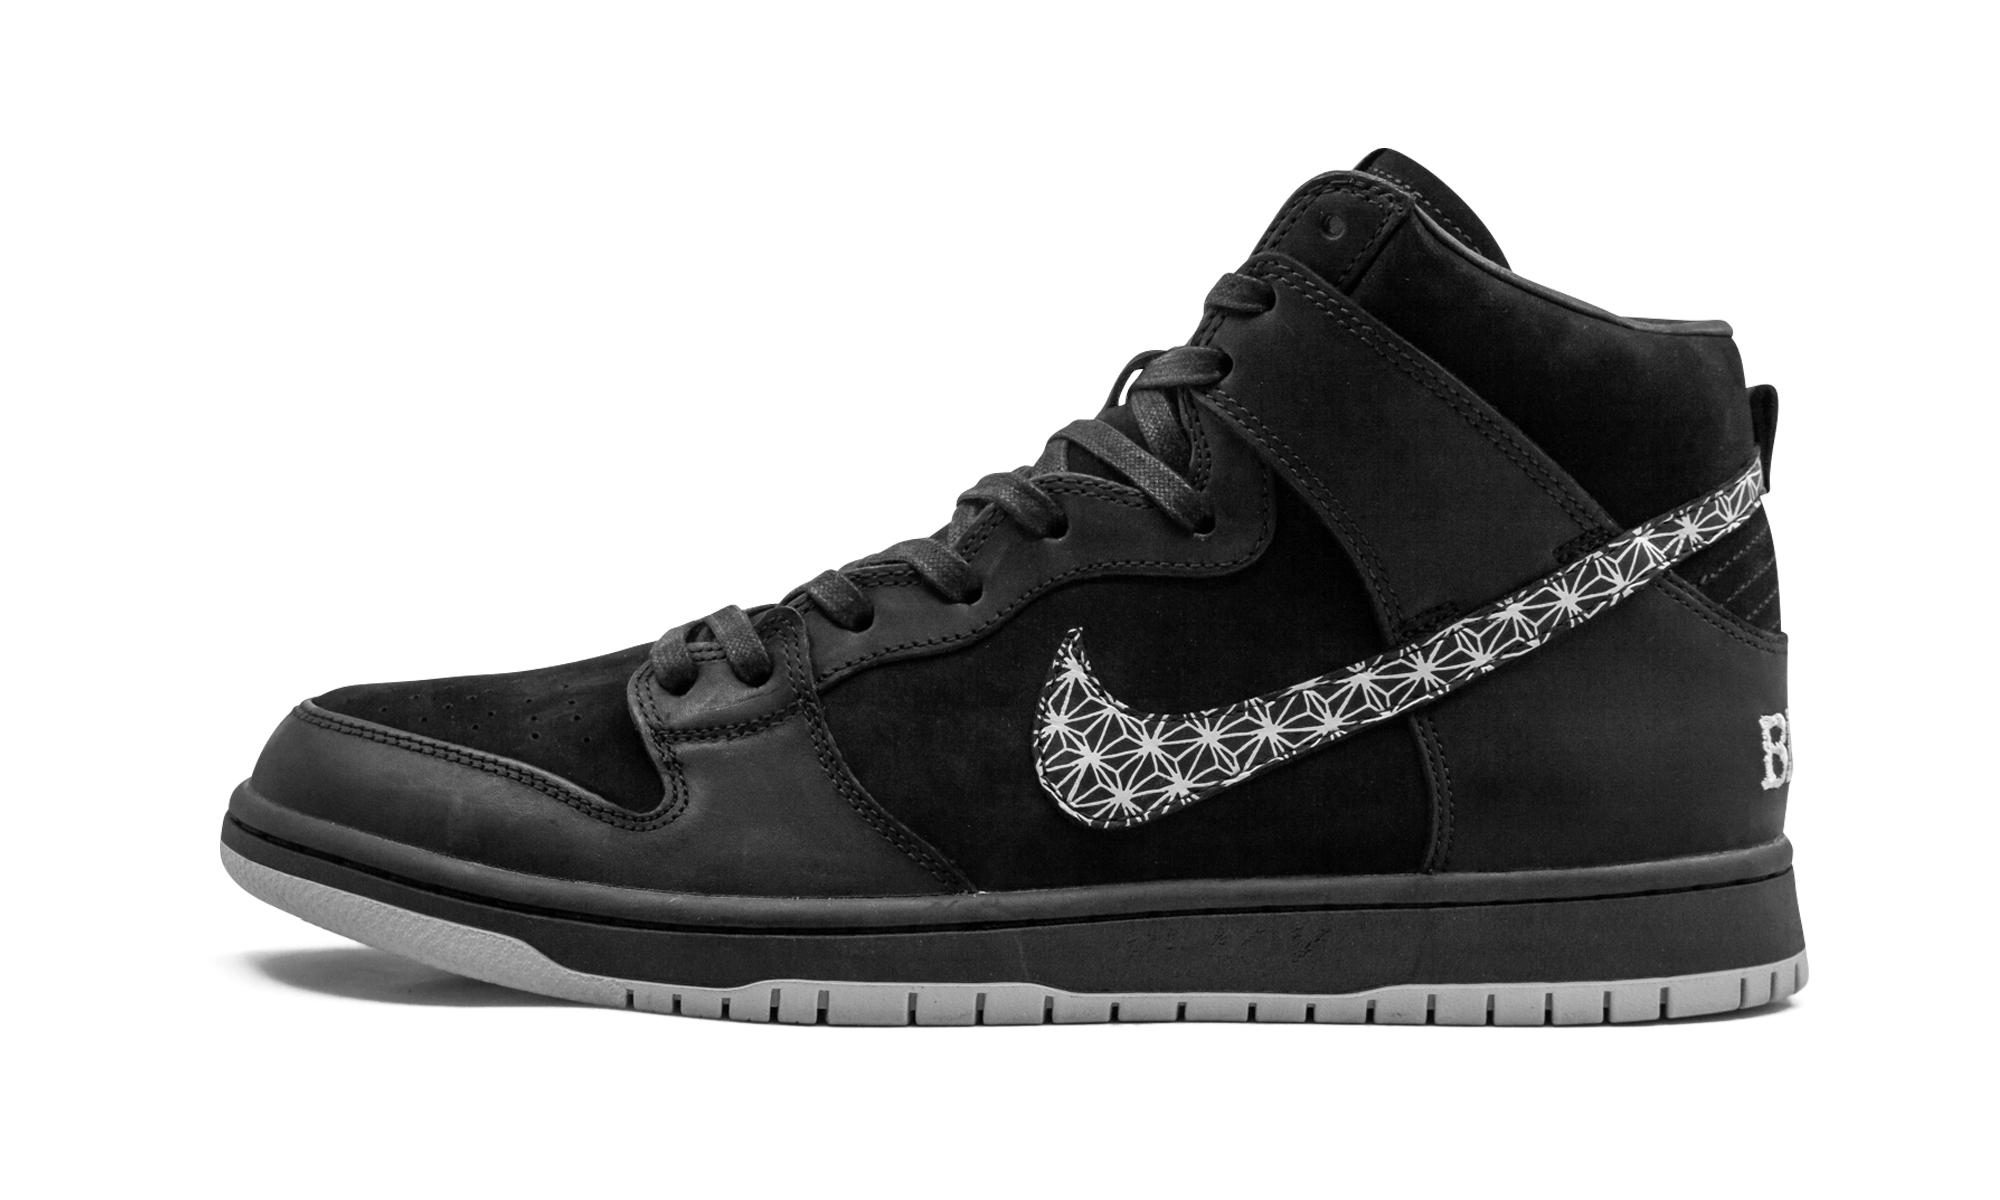 8fd6acf7344c Lyst - Nike Sb Zoom Dunk High Pro Qs in Black for Men